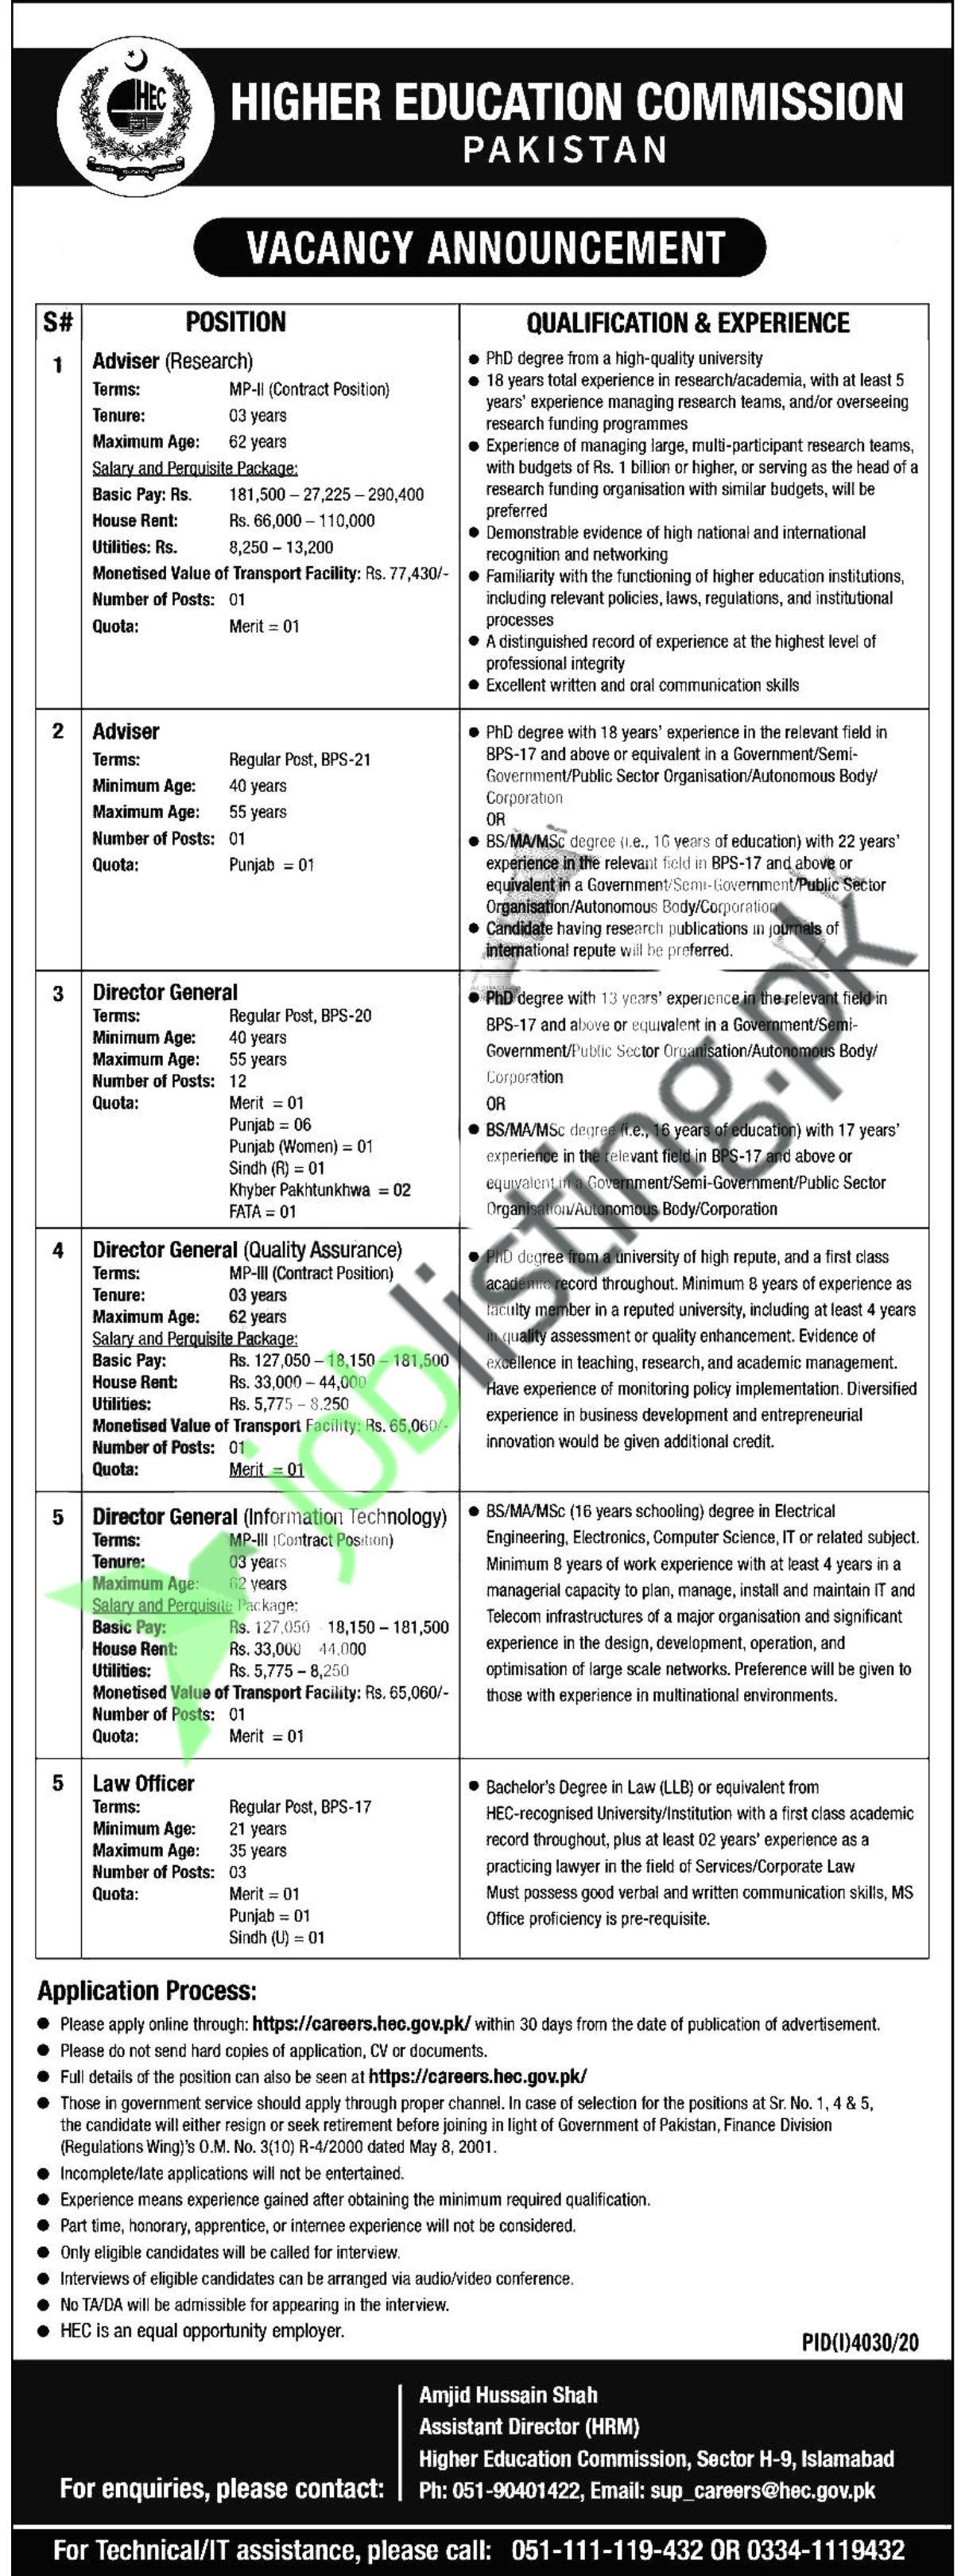 Director General Jobs in Higher Education Commission Islamabad